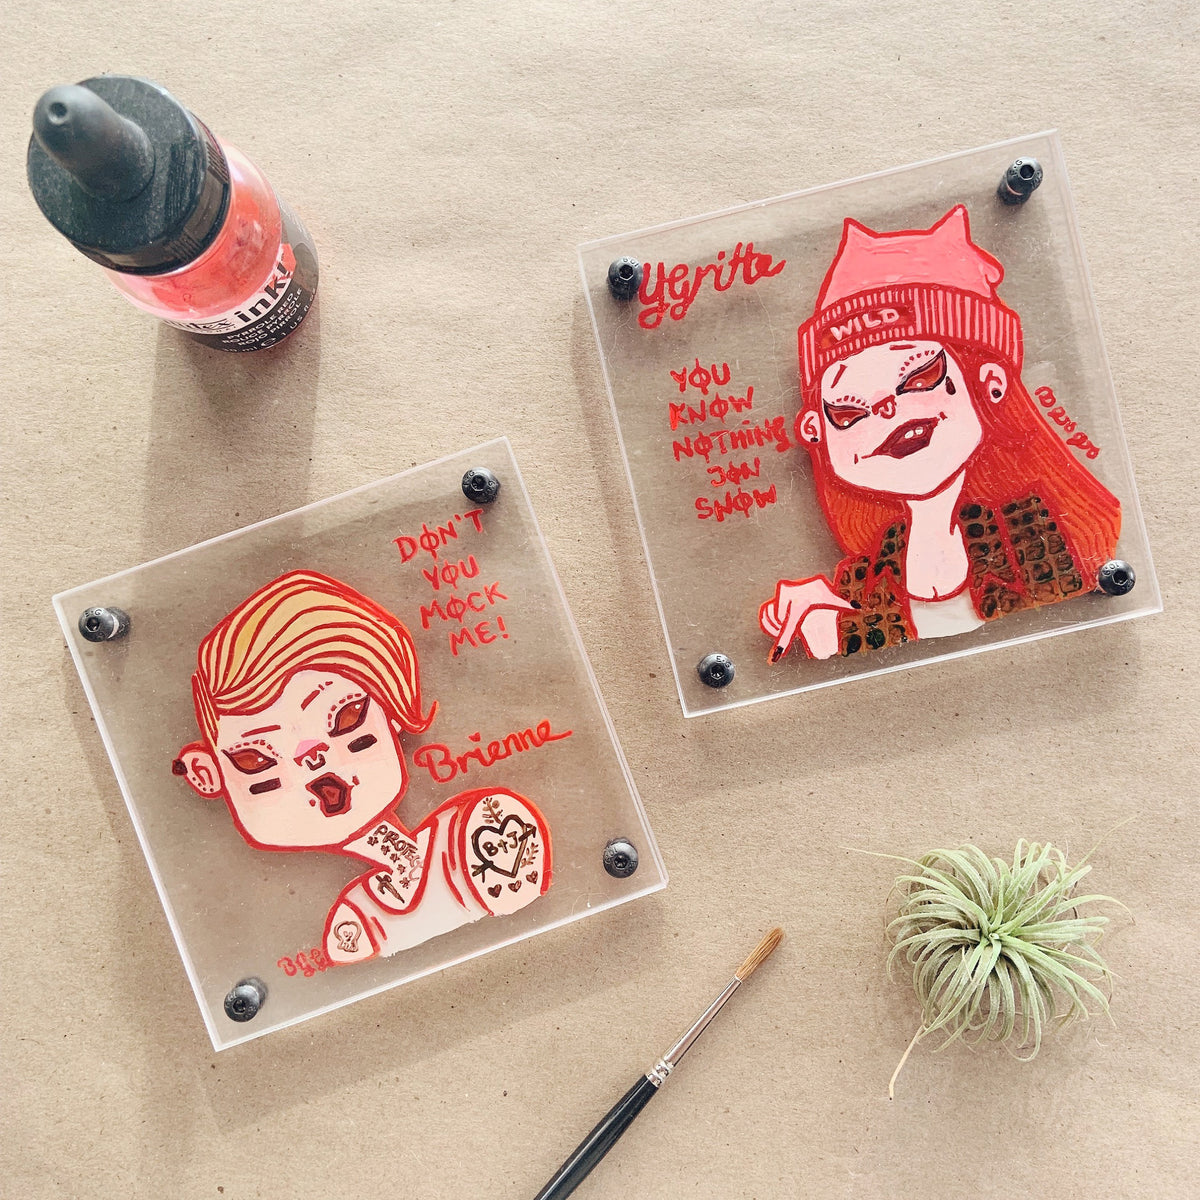 Game of Thrones Girl Power - Ygritte the Wildling - Hand-painted Coaster Fan Art